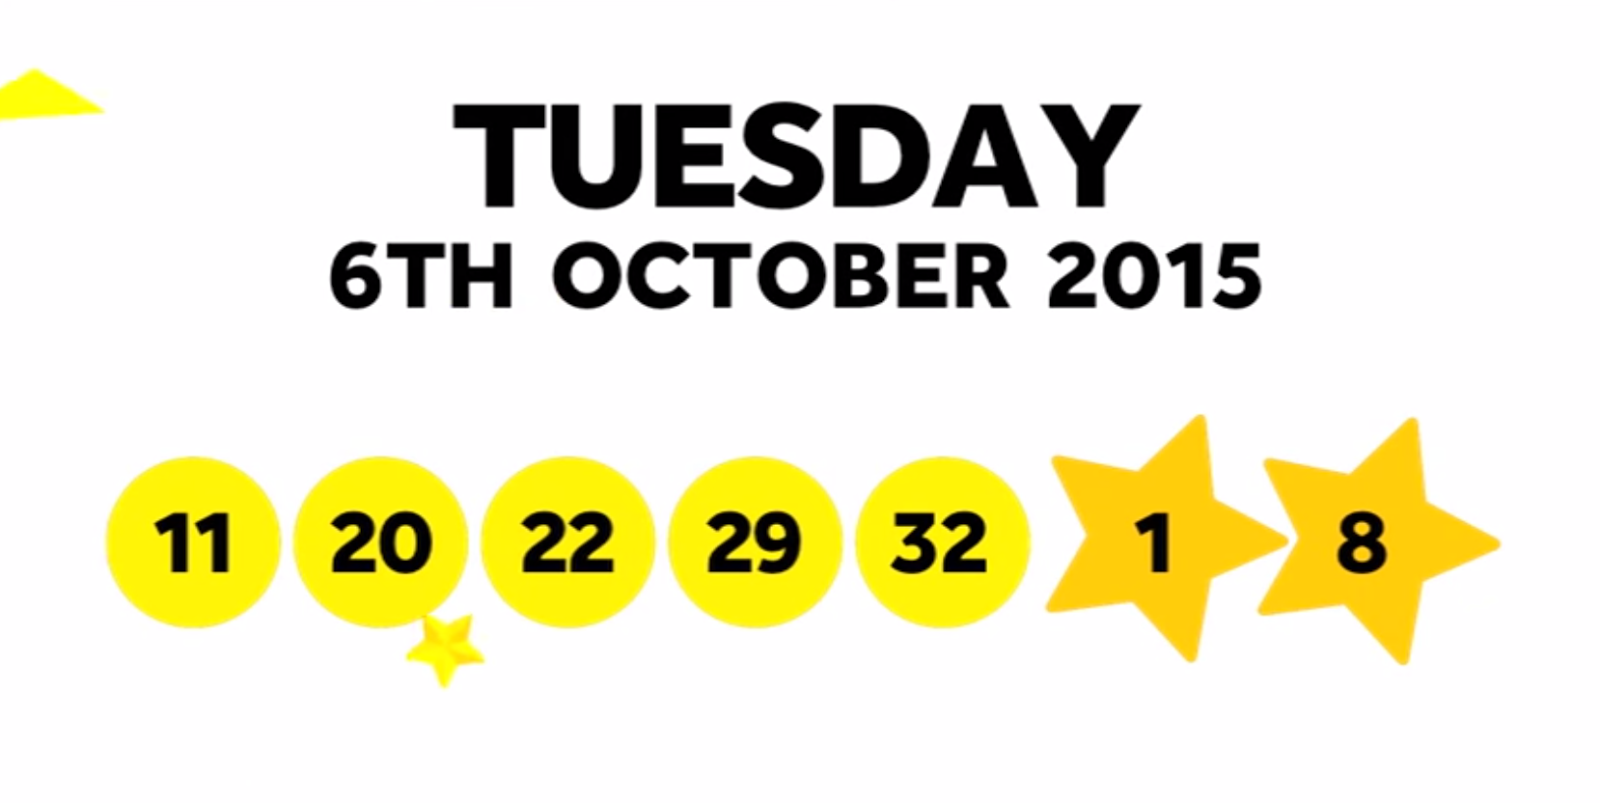 The National Lottery Tuesday 'EuroMillions' draw results from 6th October 2015: 11,20,22,29,32; Lucky Stars: 1,8